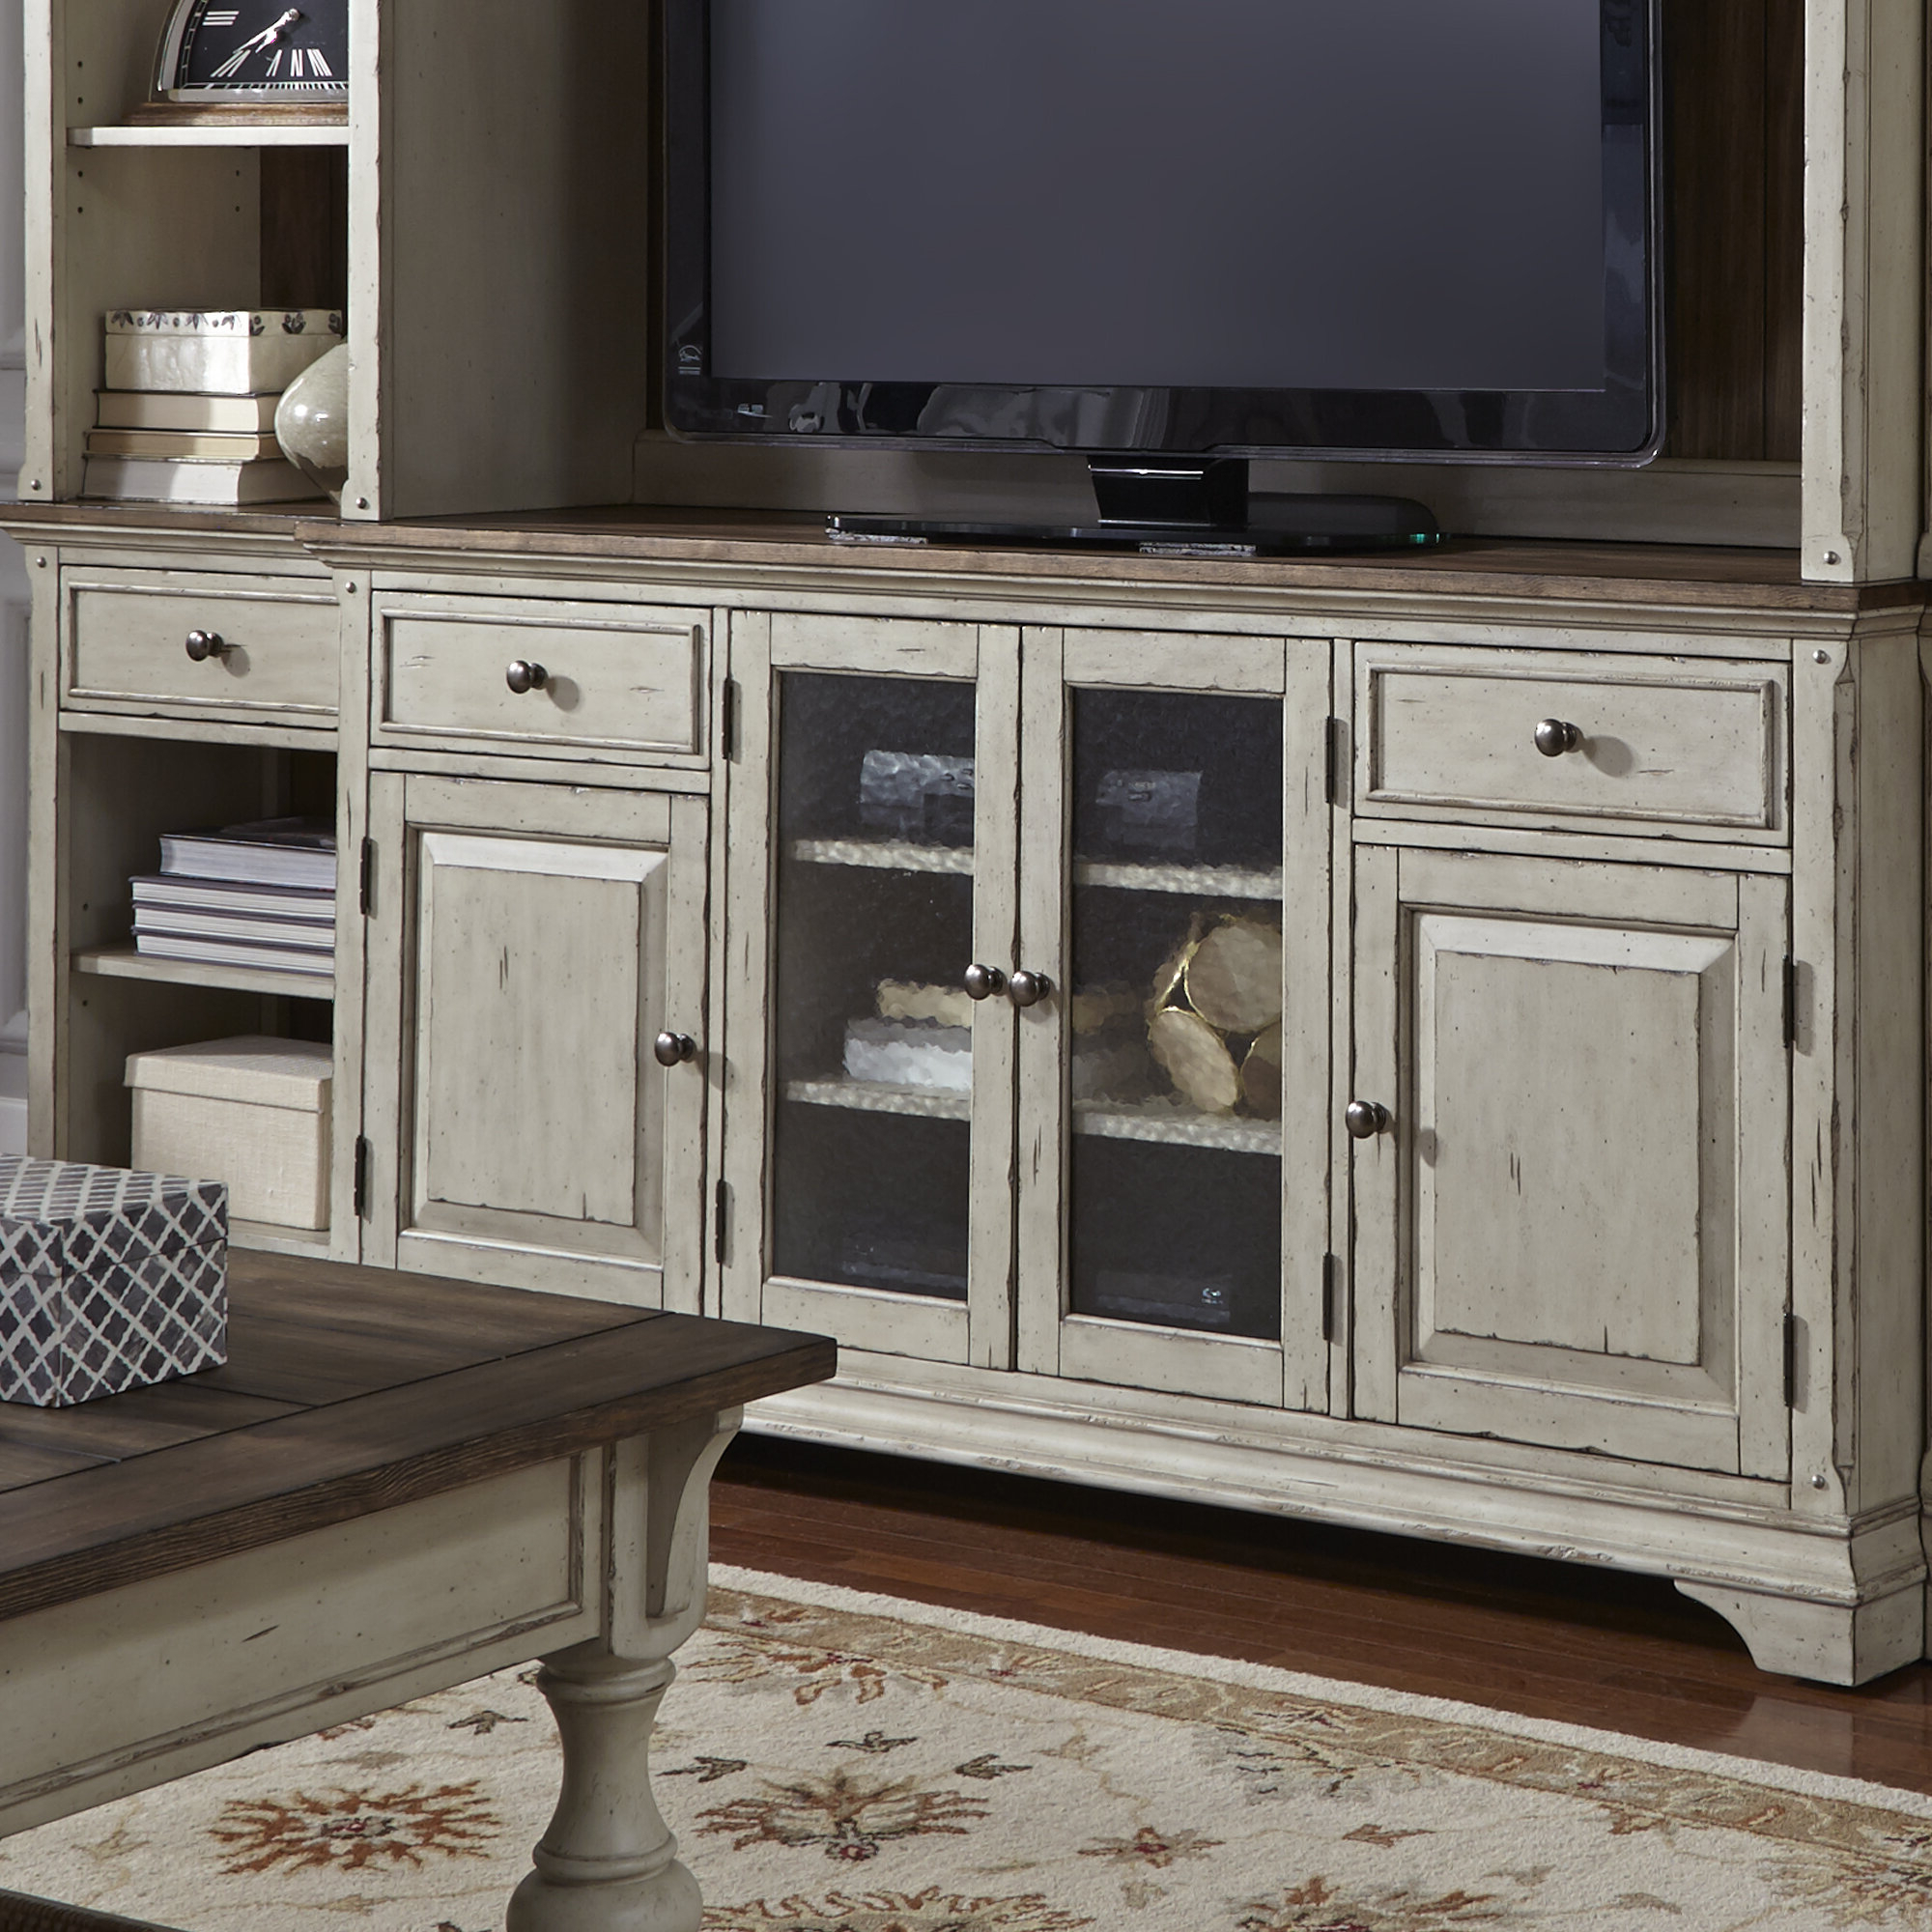 "Farmhouse & Rustic Rosecliff Heights Tv Stands | Birch Lane Within Parmelee Tv Stands For Tvs Up To 65"" (View 16 of 20)"